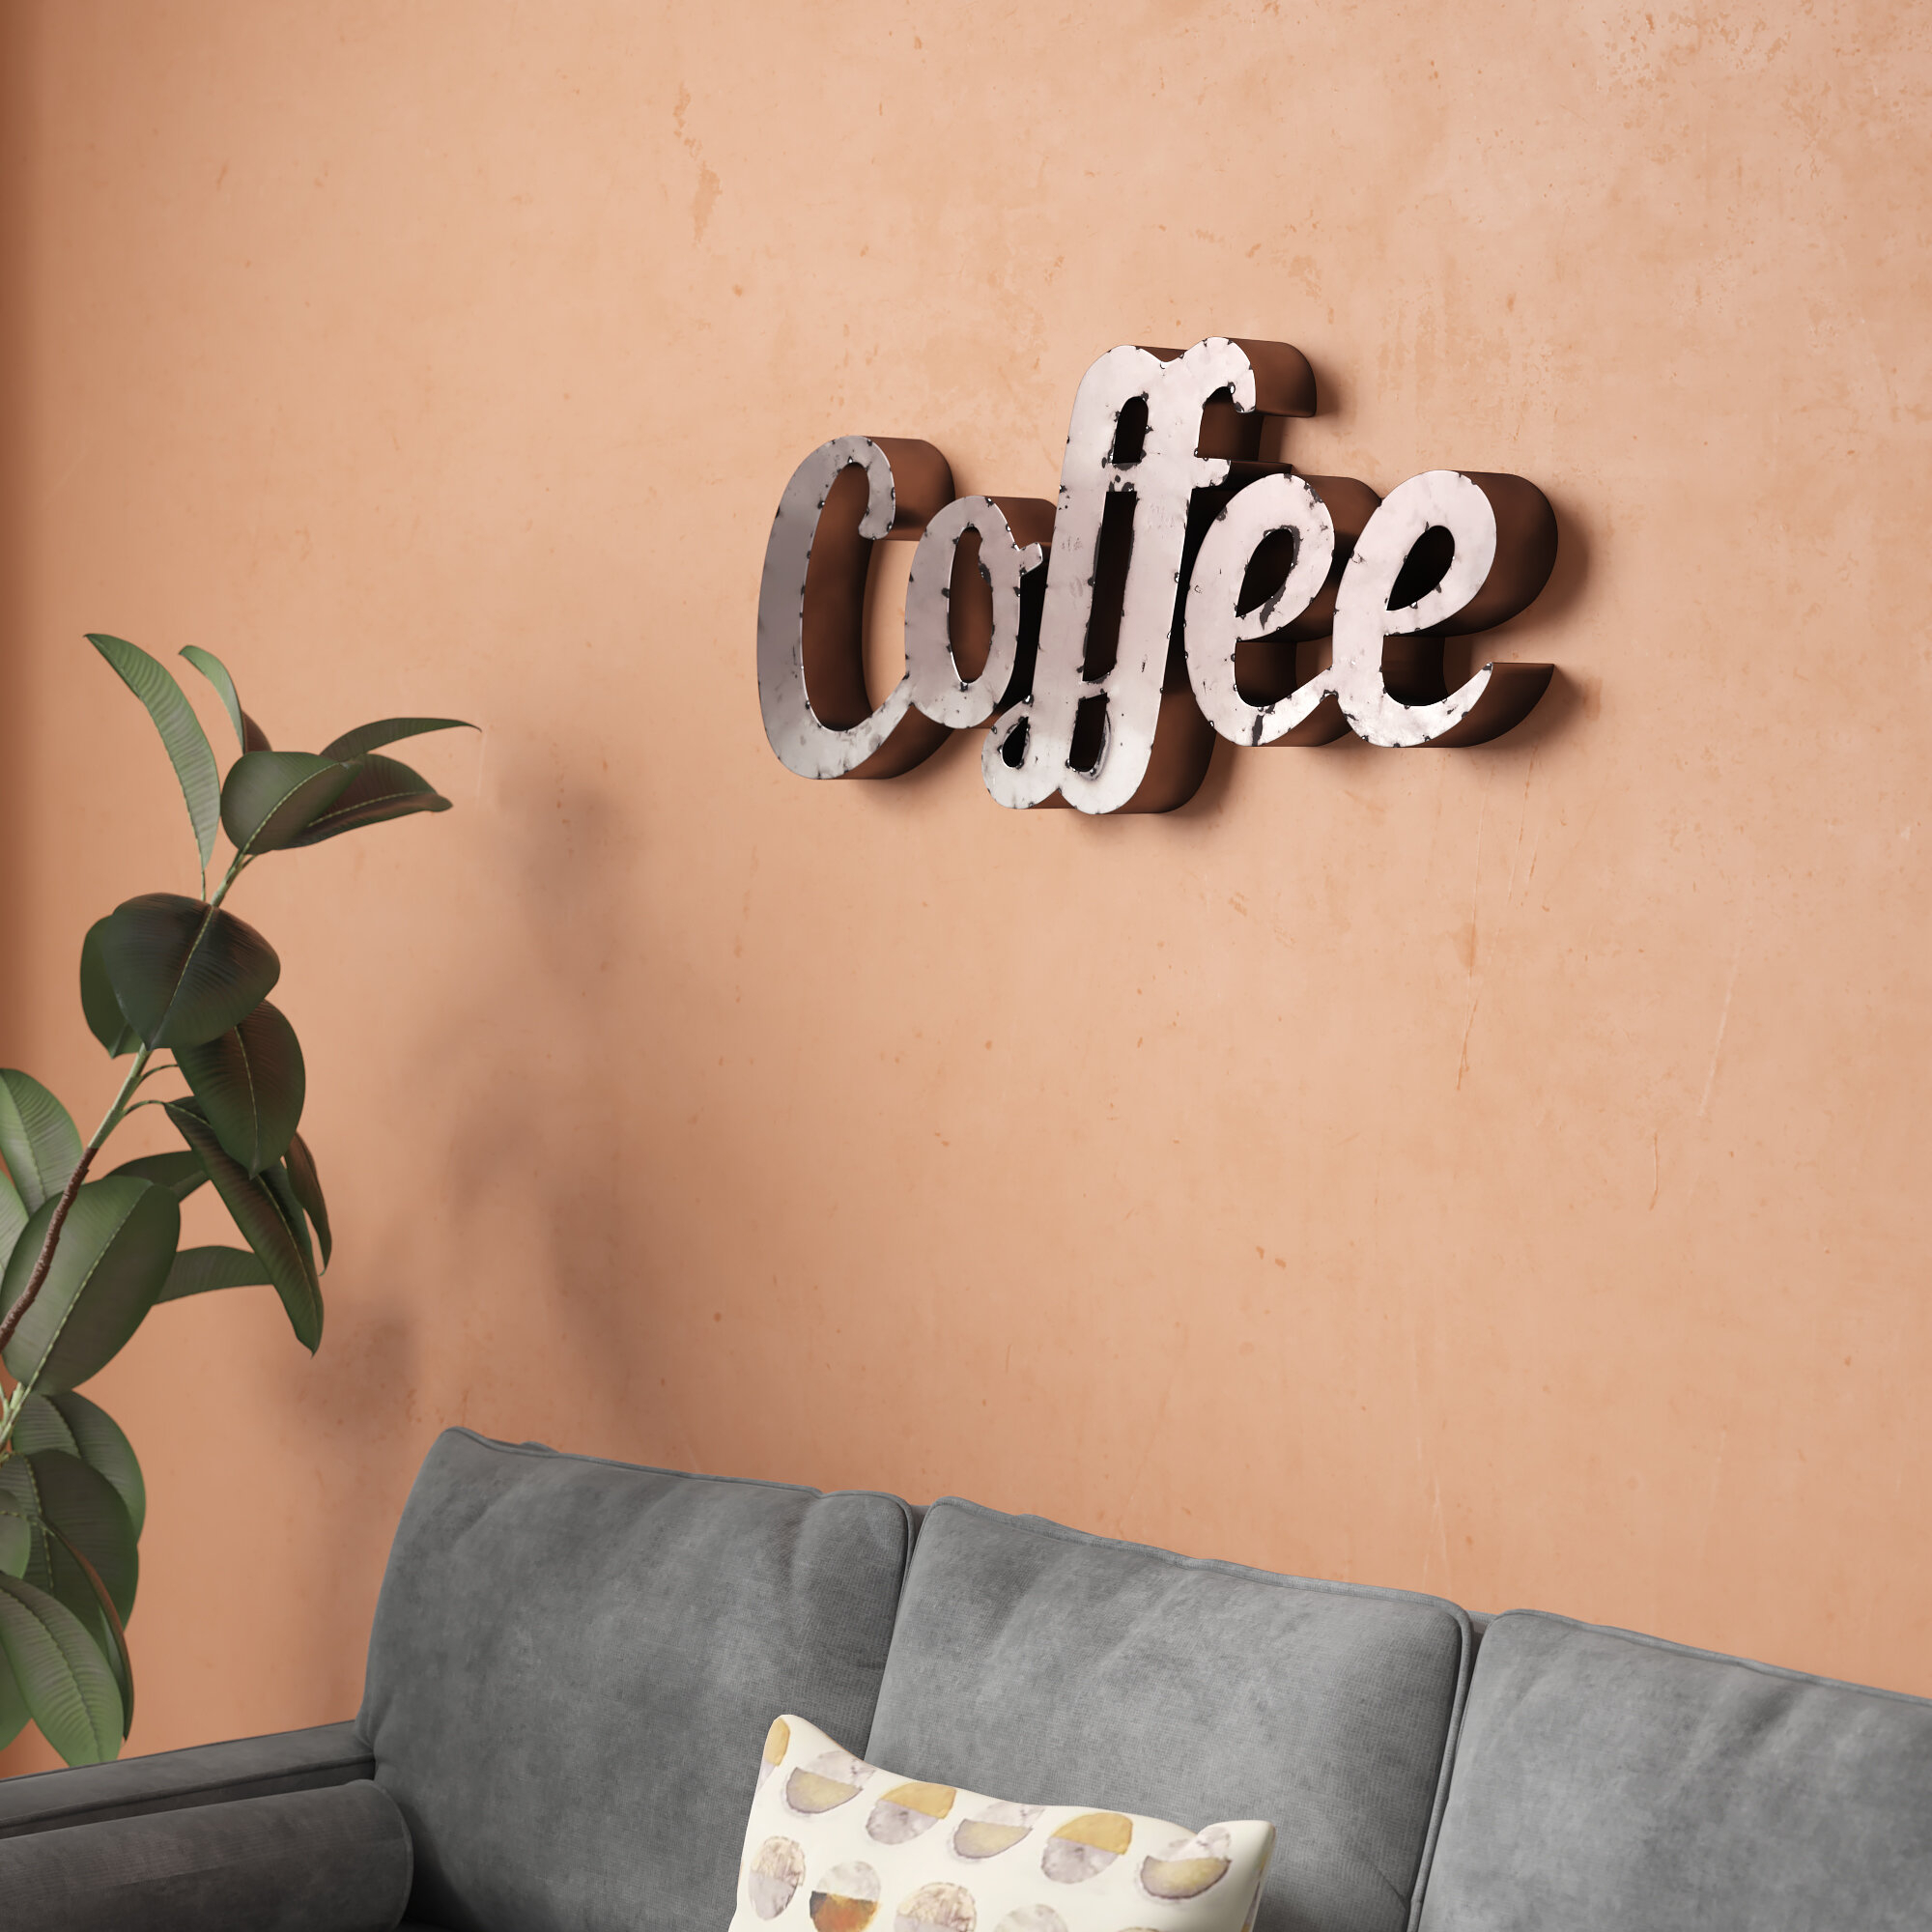 Featured Photo of Coffee Sign With Rebar Wall Decor